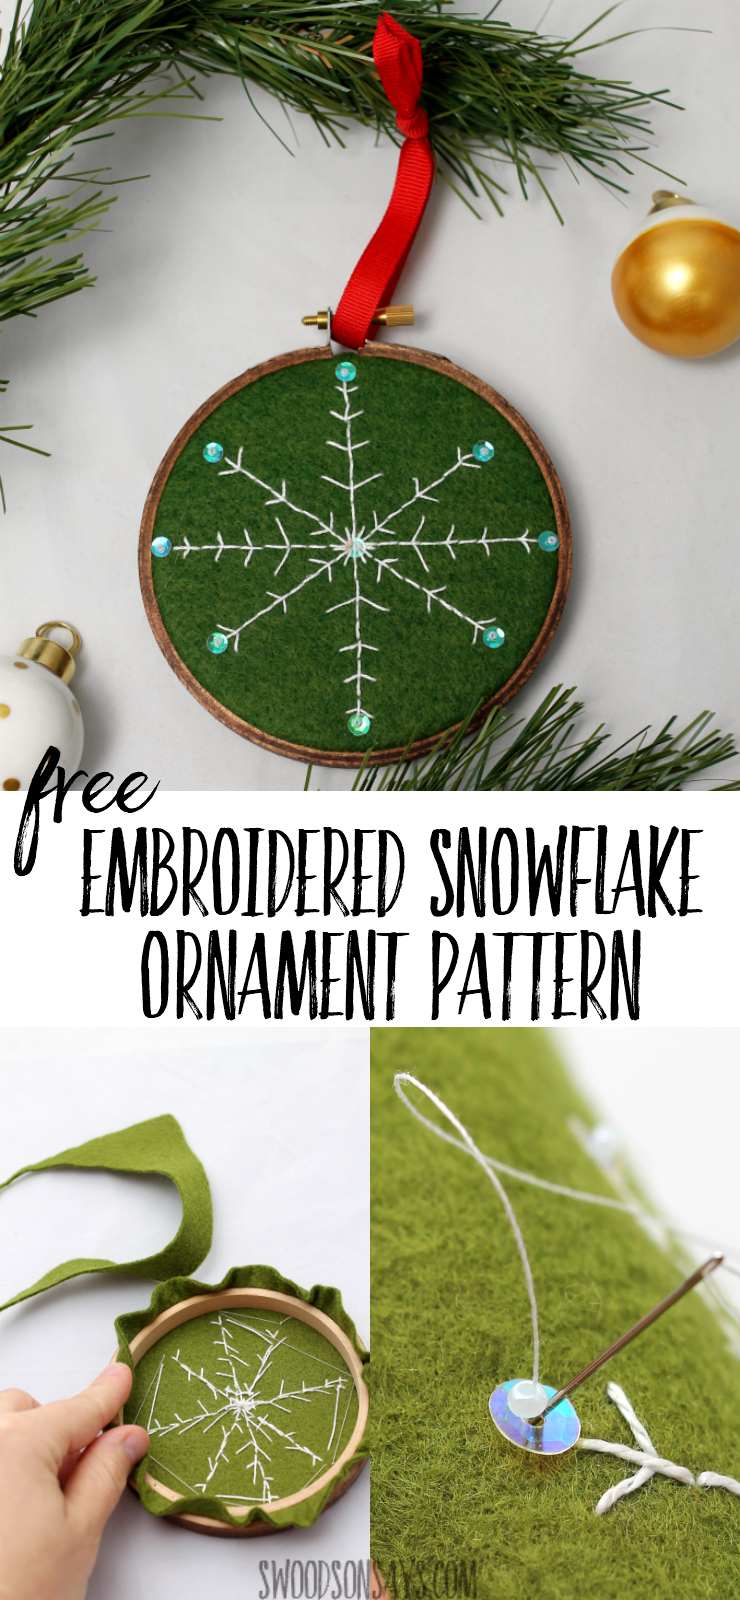 Free DIY embroidered snowflake ornament pattern to stitch up and gift this year! Embroidery hoop ornaments are easy and fun to make, and this snowflake embroidery design uses a simple back stitch that anyone can sew. #diychristmasornament #christmascraft